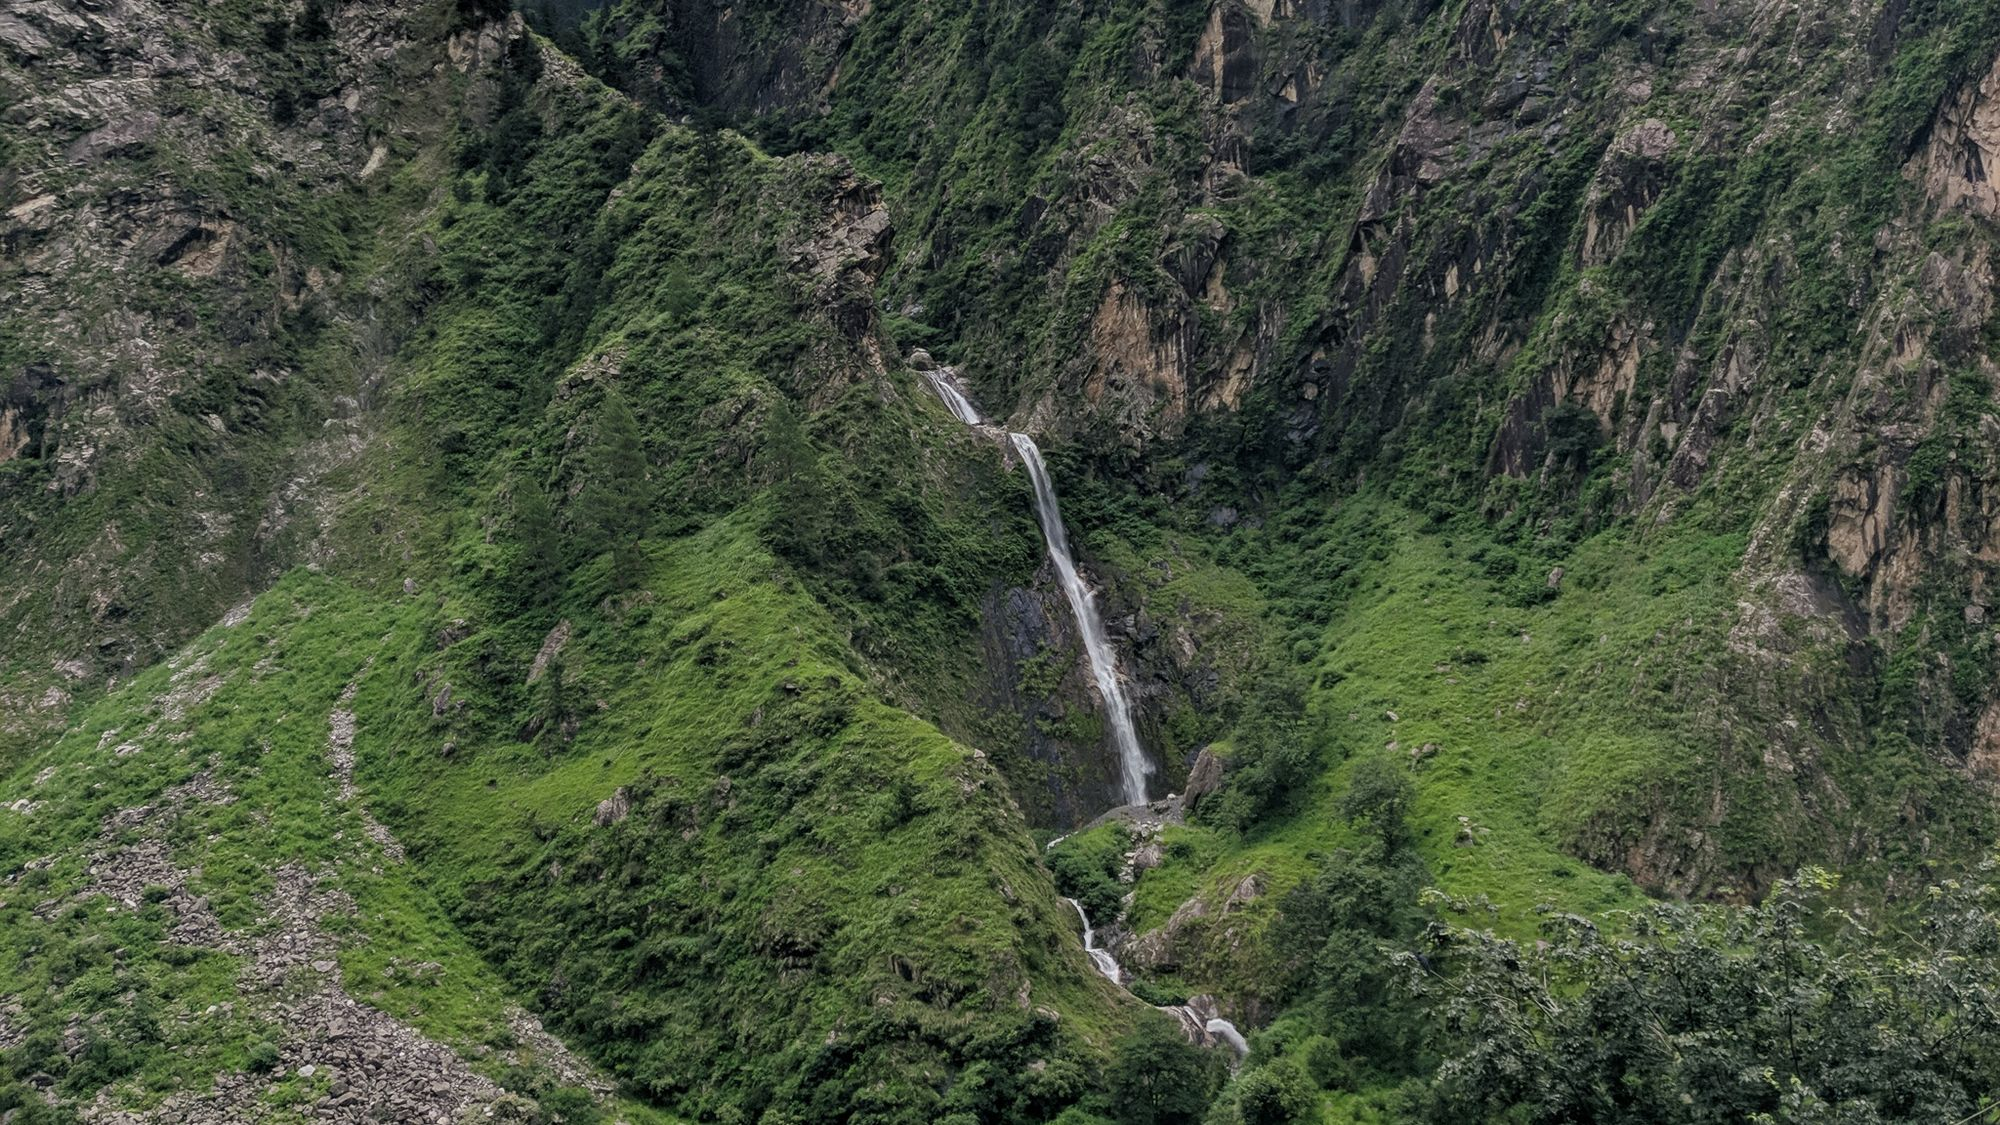 Waterfalls are a common sight during monsoon in Himalayas